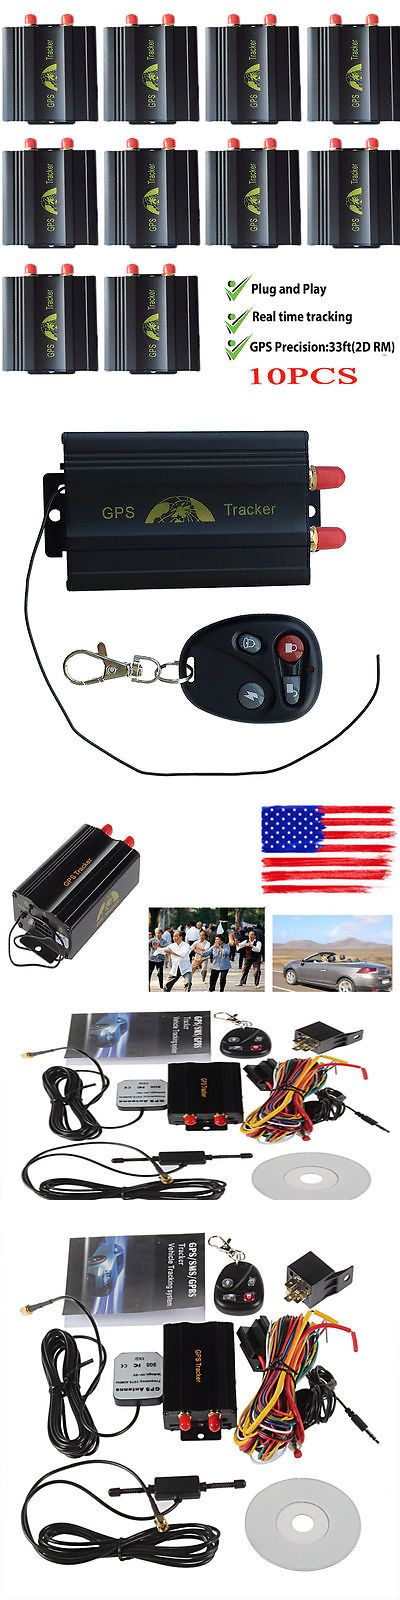 Other Vintage Electronics: 10X Car Gps103-A Gps Tracker Vehicle Tracking System Support Both Gps And Lbs L8 V BUY IT NOW ONLY: $239.87